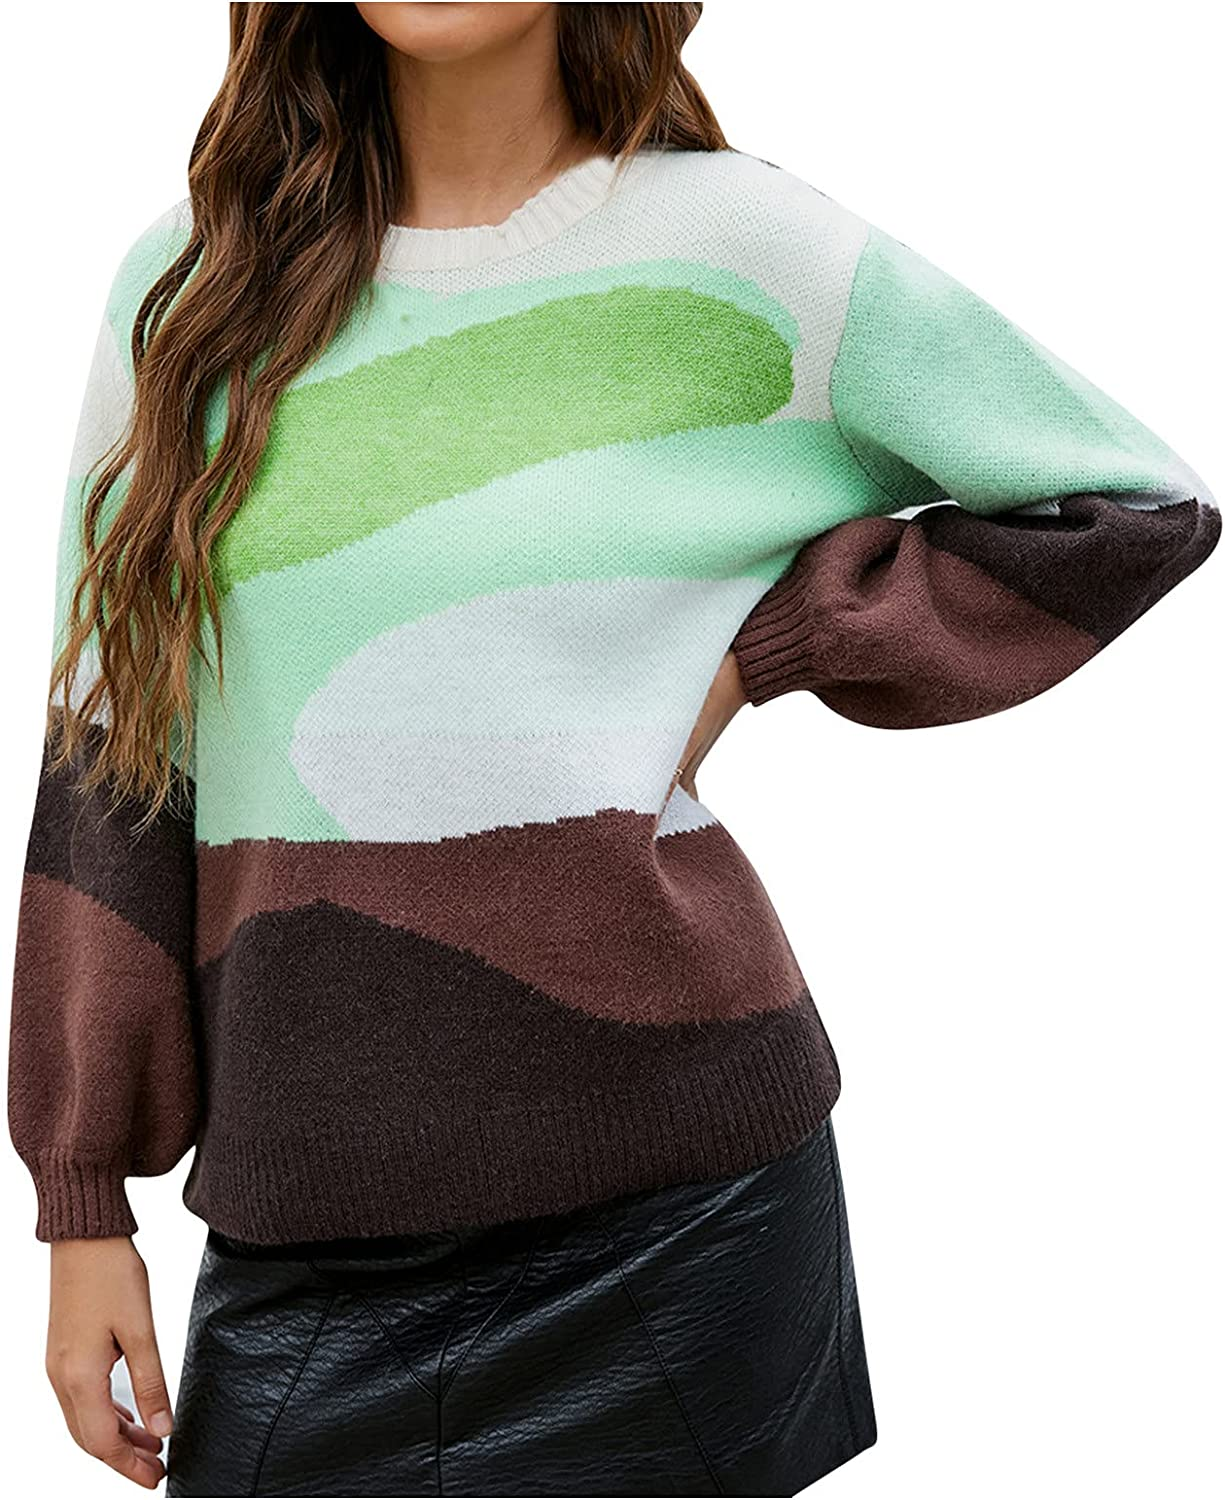 Women's Color Block Sweater Long Sleeve Casual Knitted Jumper Loose Pullover Sweatshirts Tops